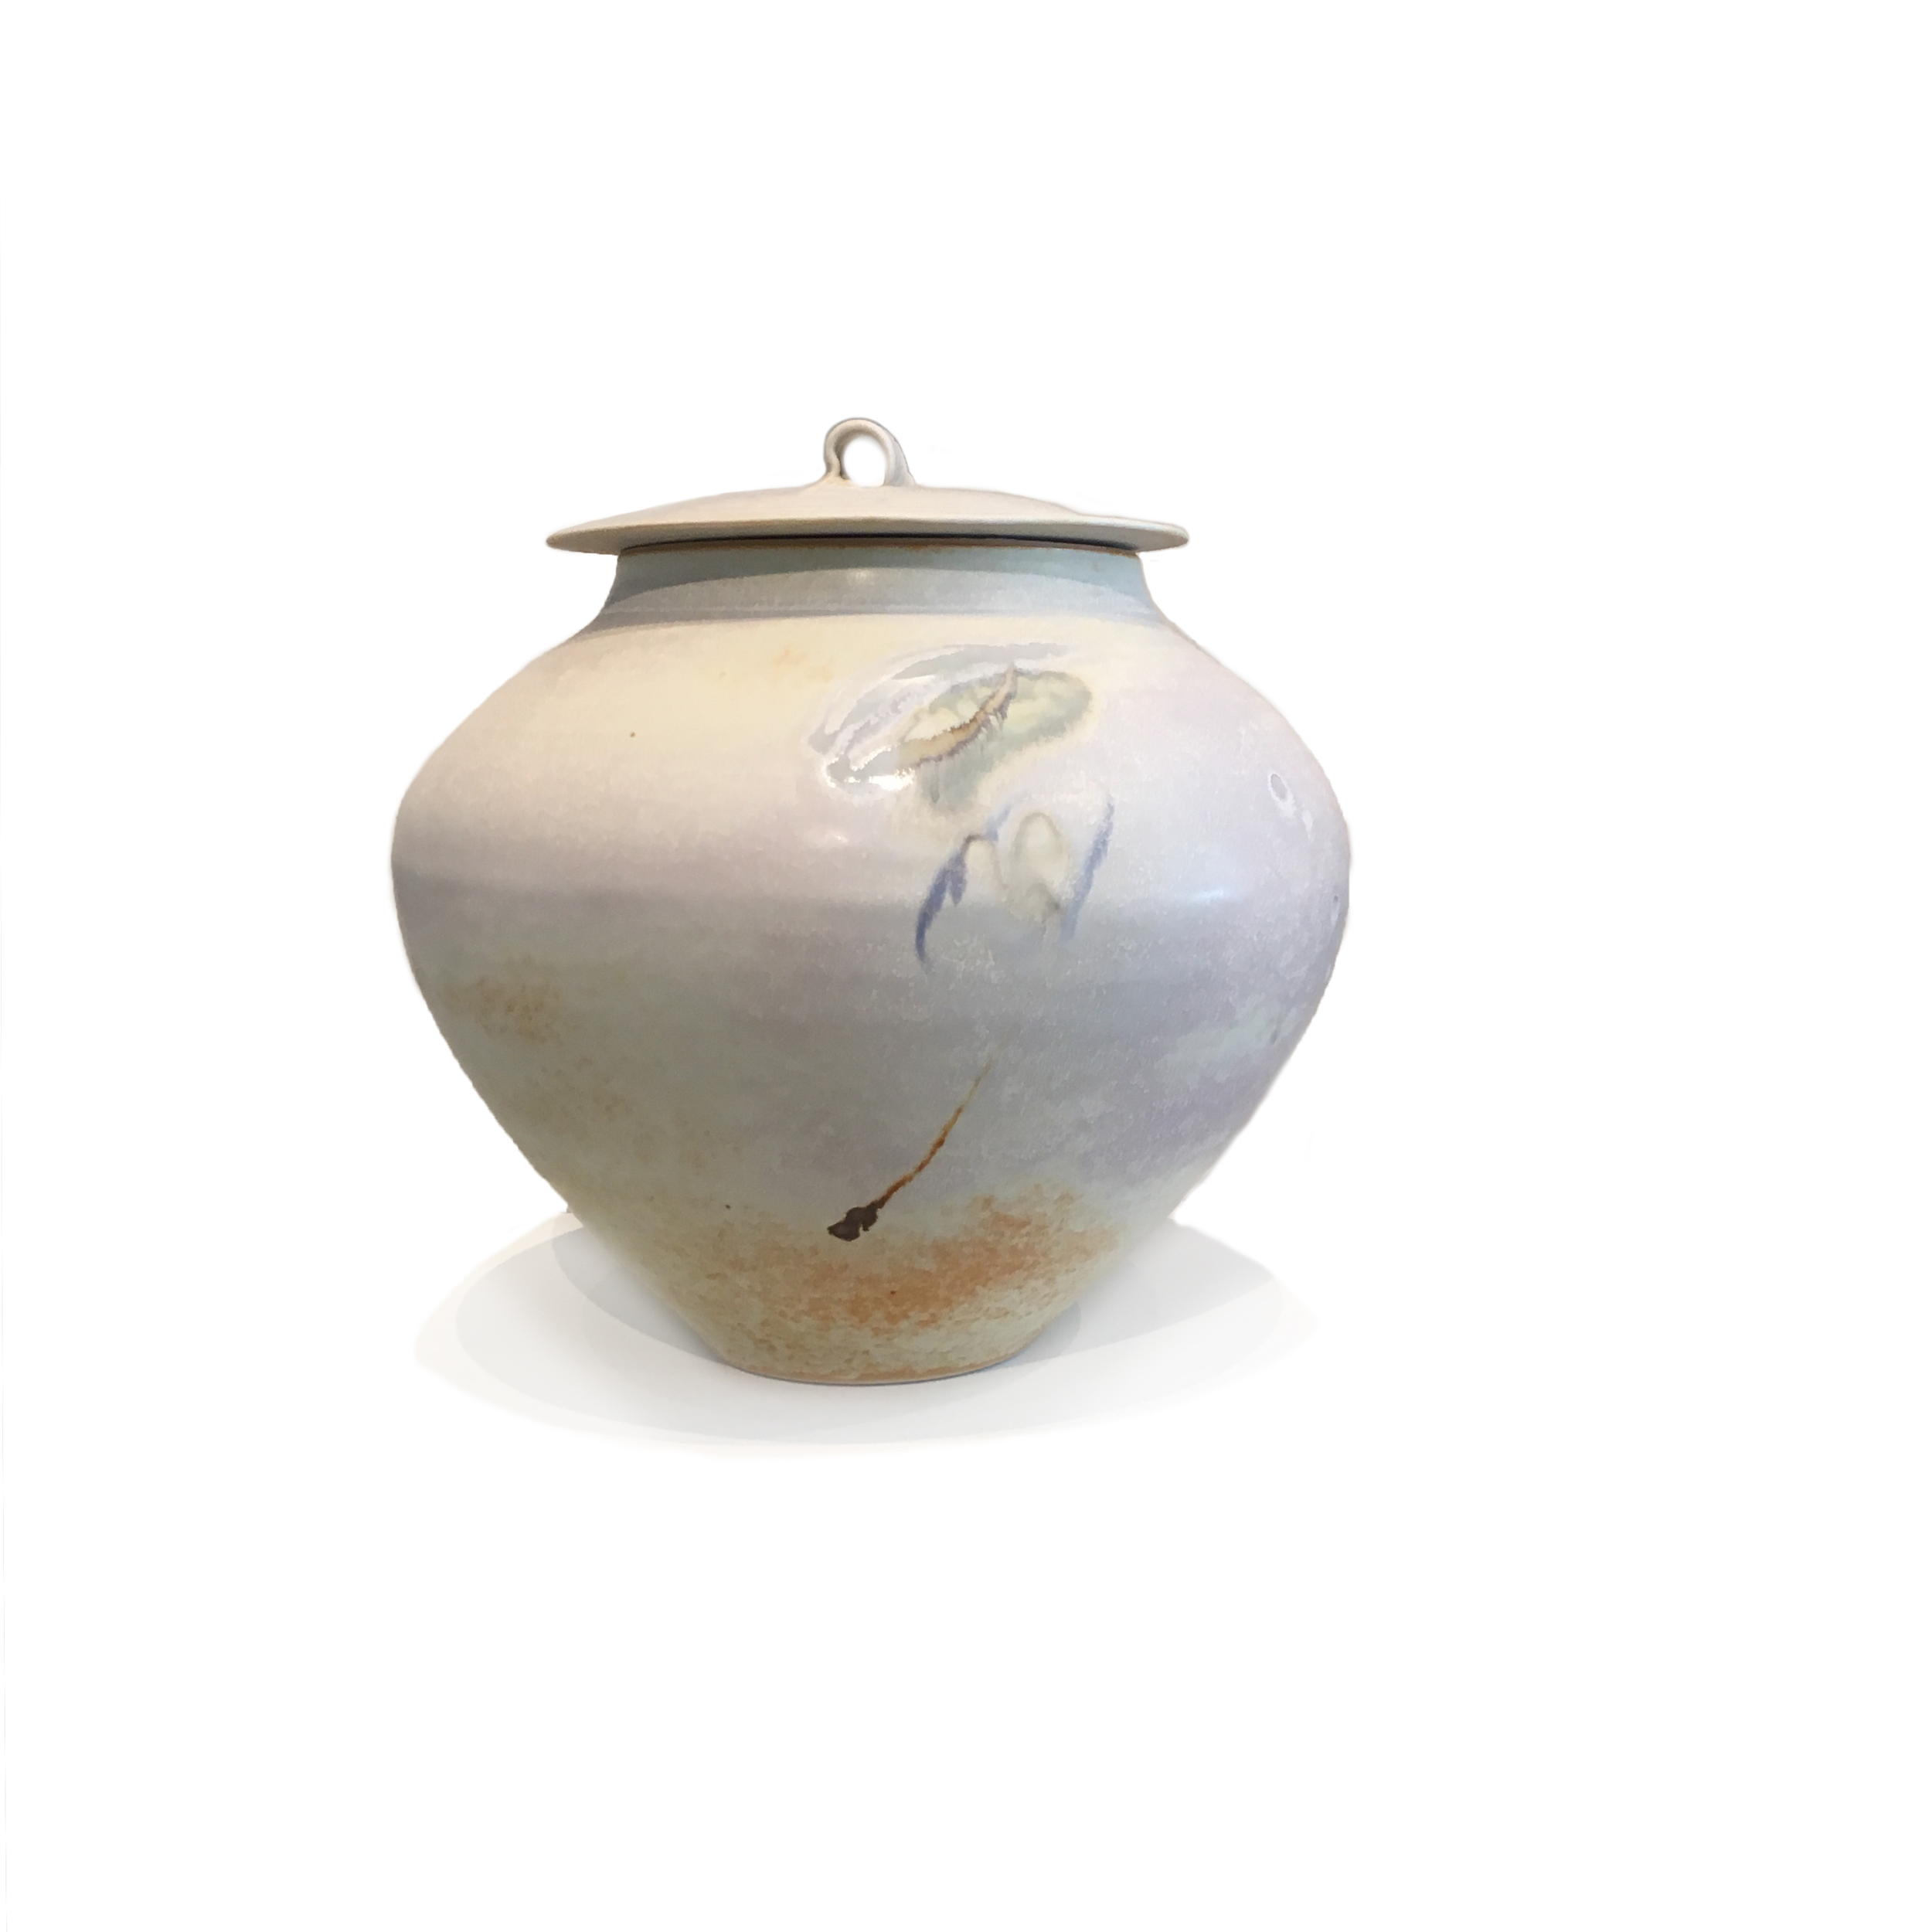 SOLD II Large Lidded Oatmeal Vessel by Kayo O'Young